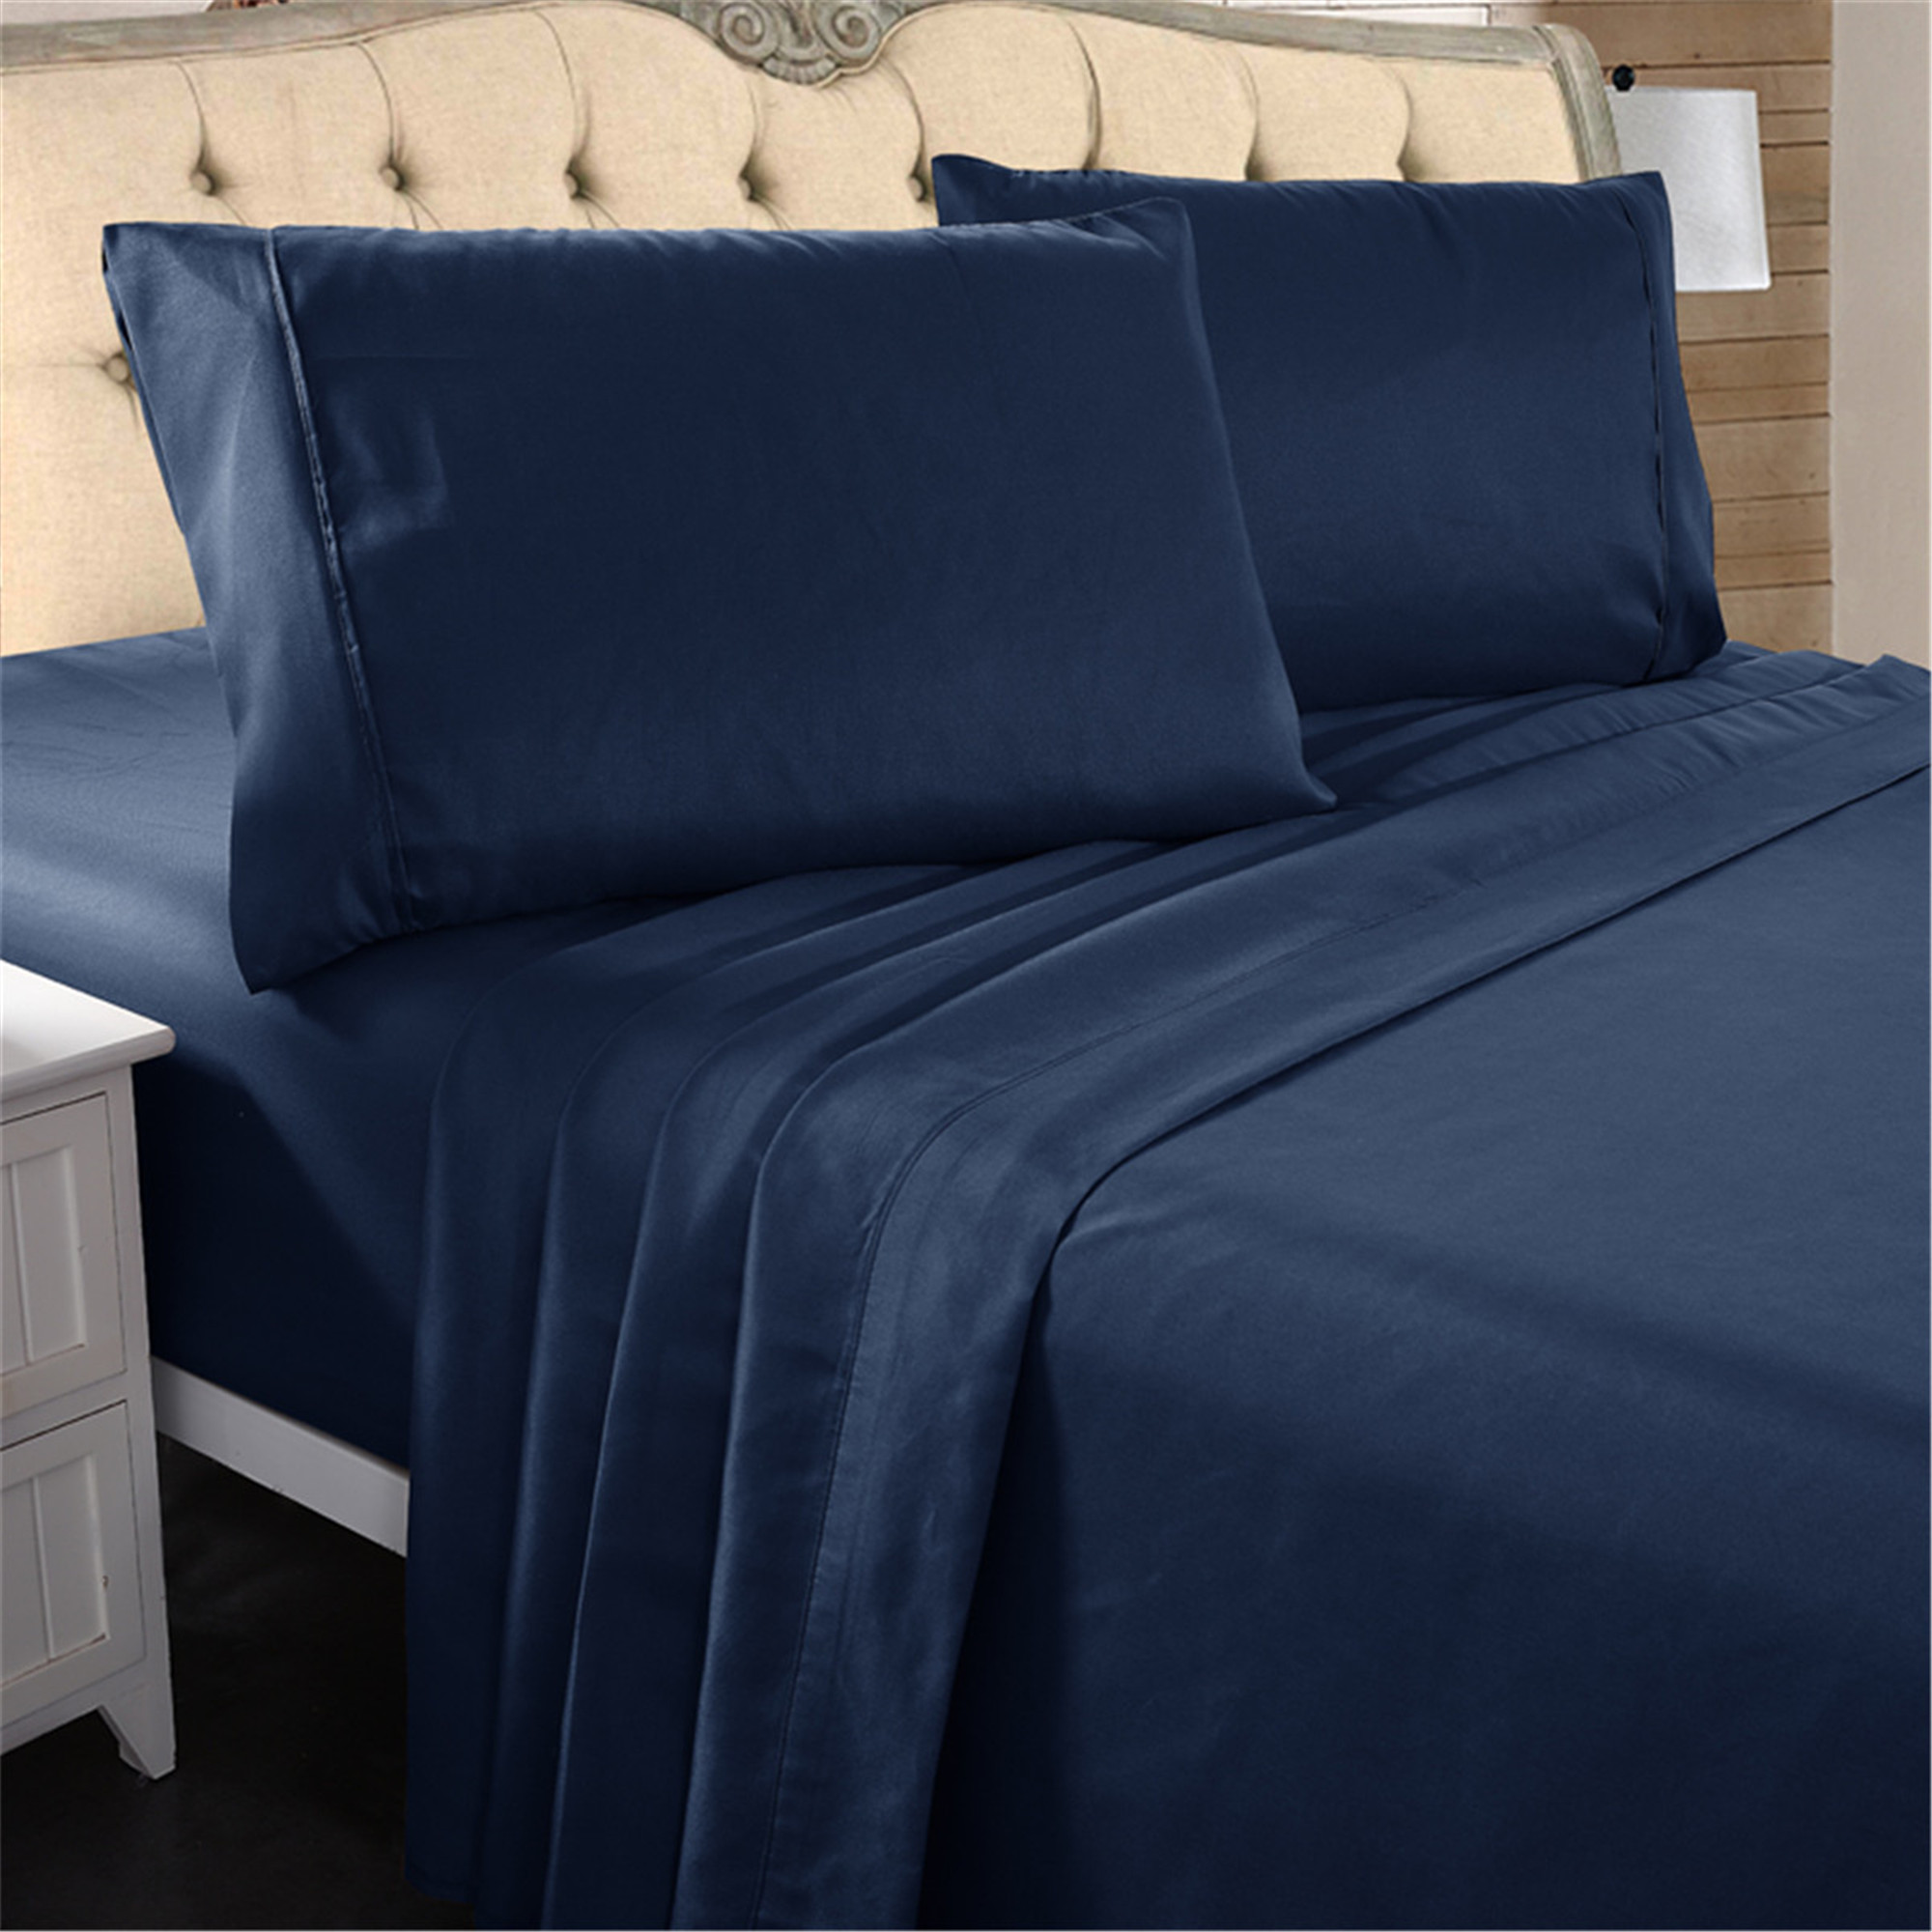 Hotel Luxury Bed Sheets 4 Pieces Extra Soft 16 Deep Pocket Brushed Microfiber Wrinkle Resistant Bedding King Navy Blue